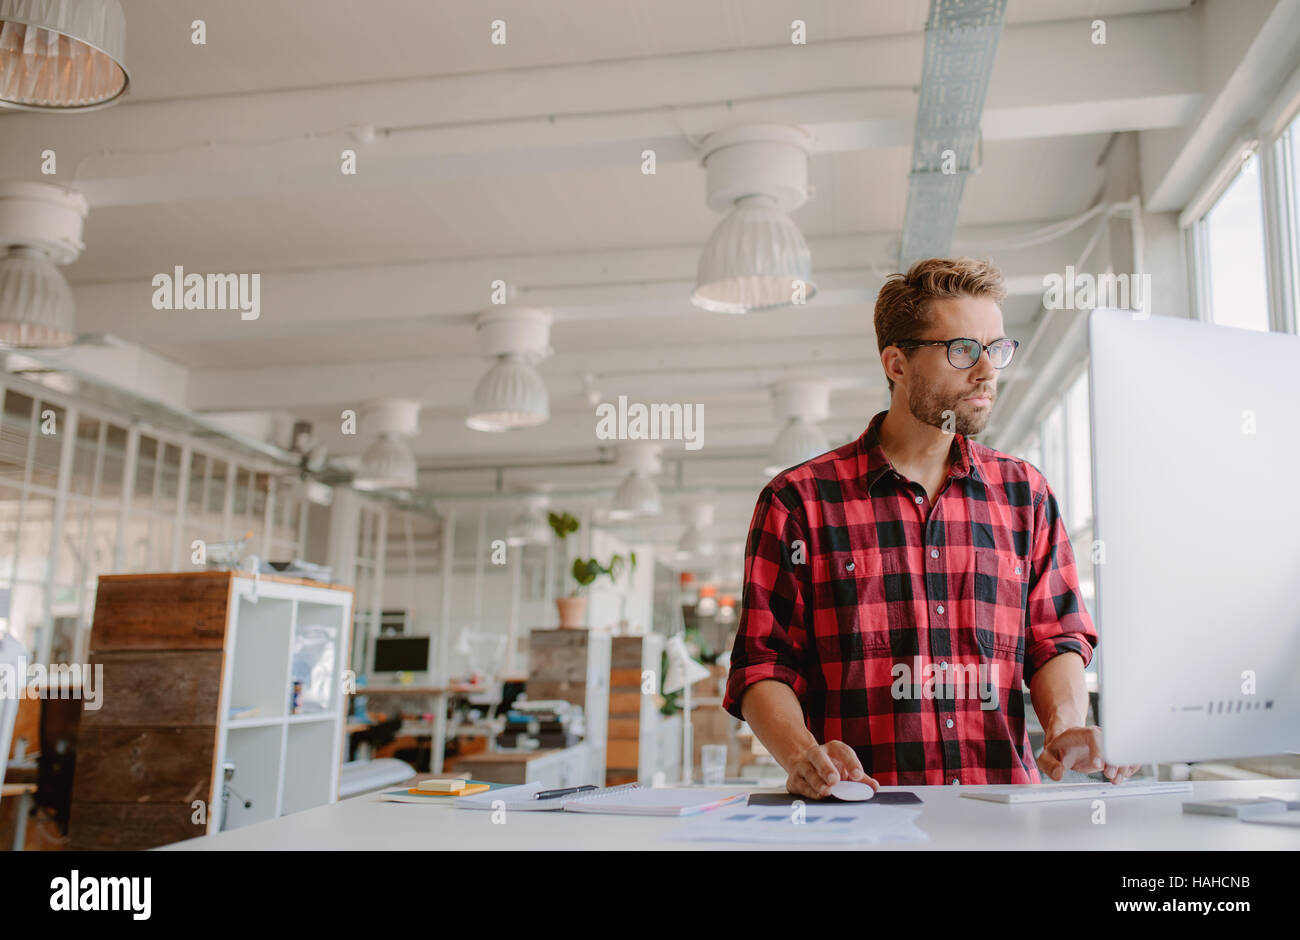 Shot of young businessman in casual clothes at modern startup business office space, working on  desktop computer. - Stock Image